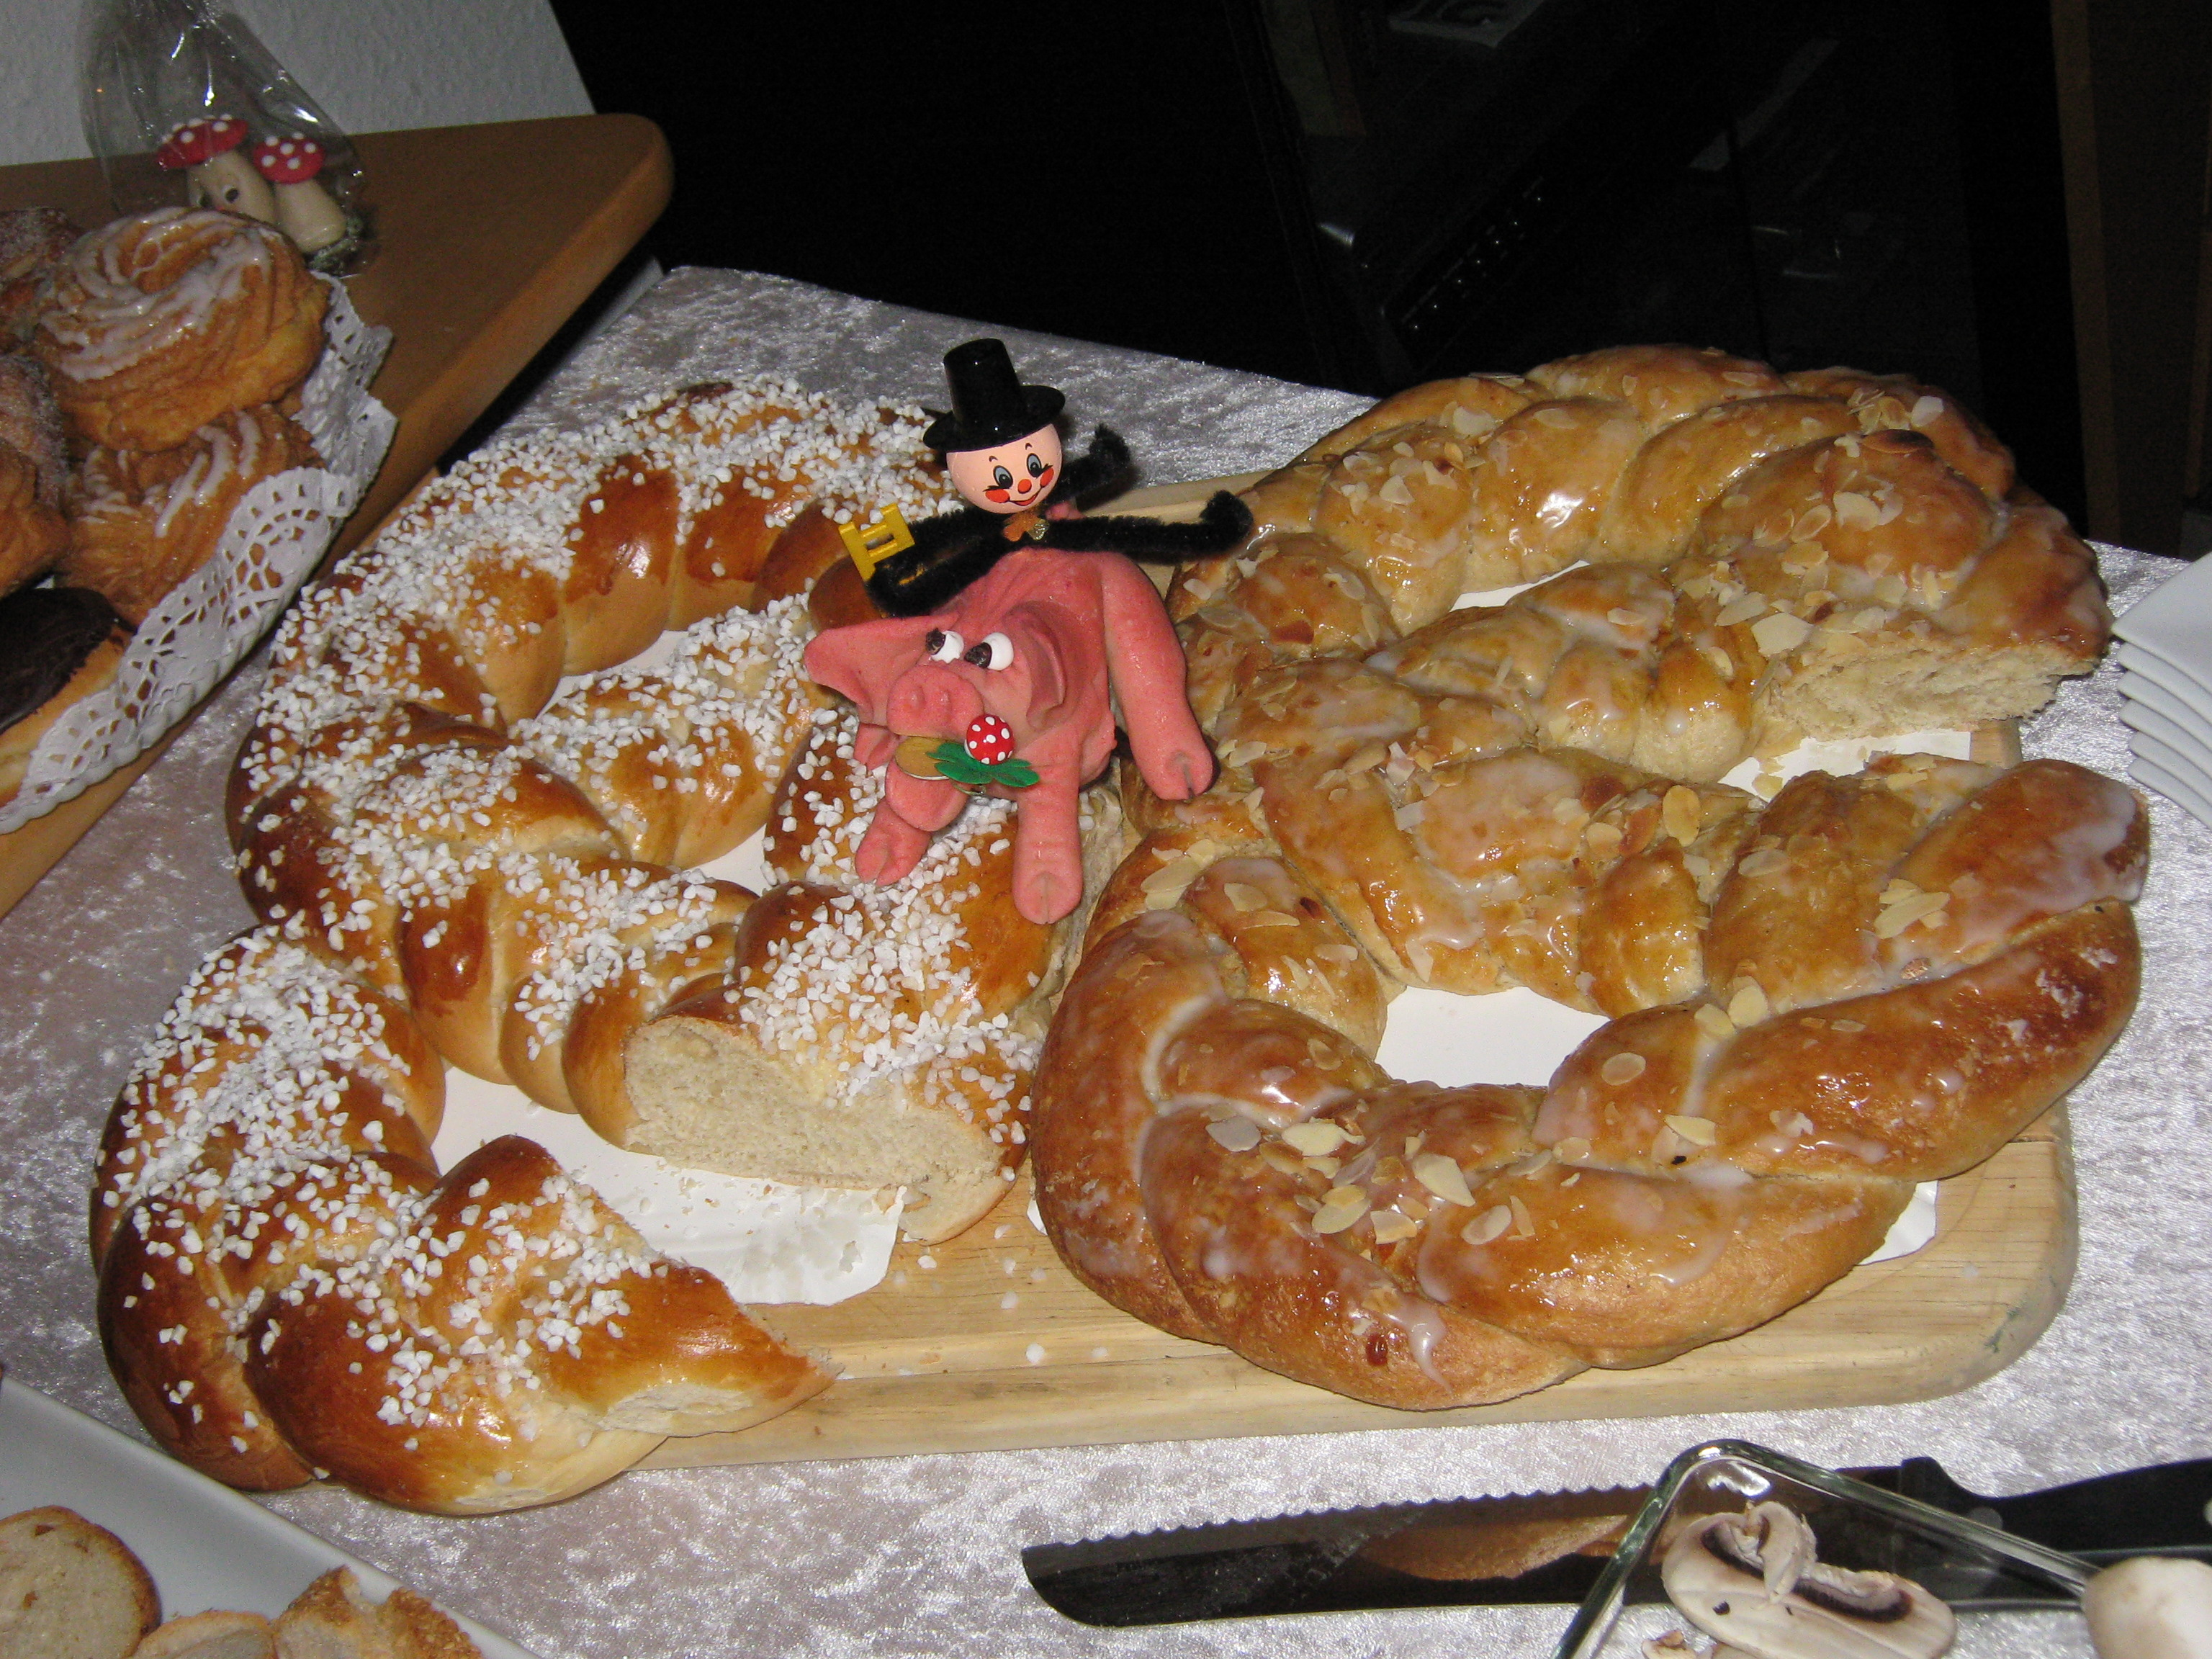 Neujahrsbrezel, New years yeast pretzel. Photo by Wikimedia